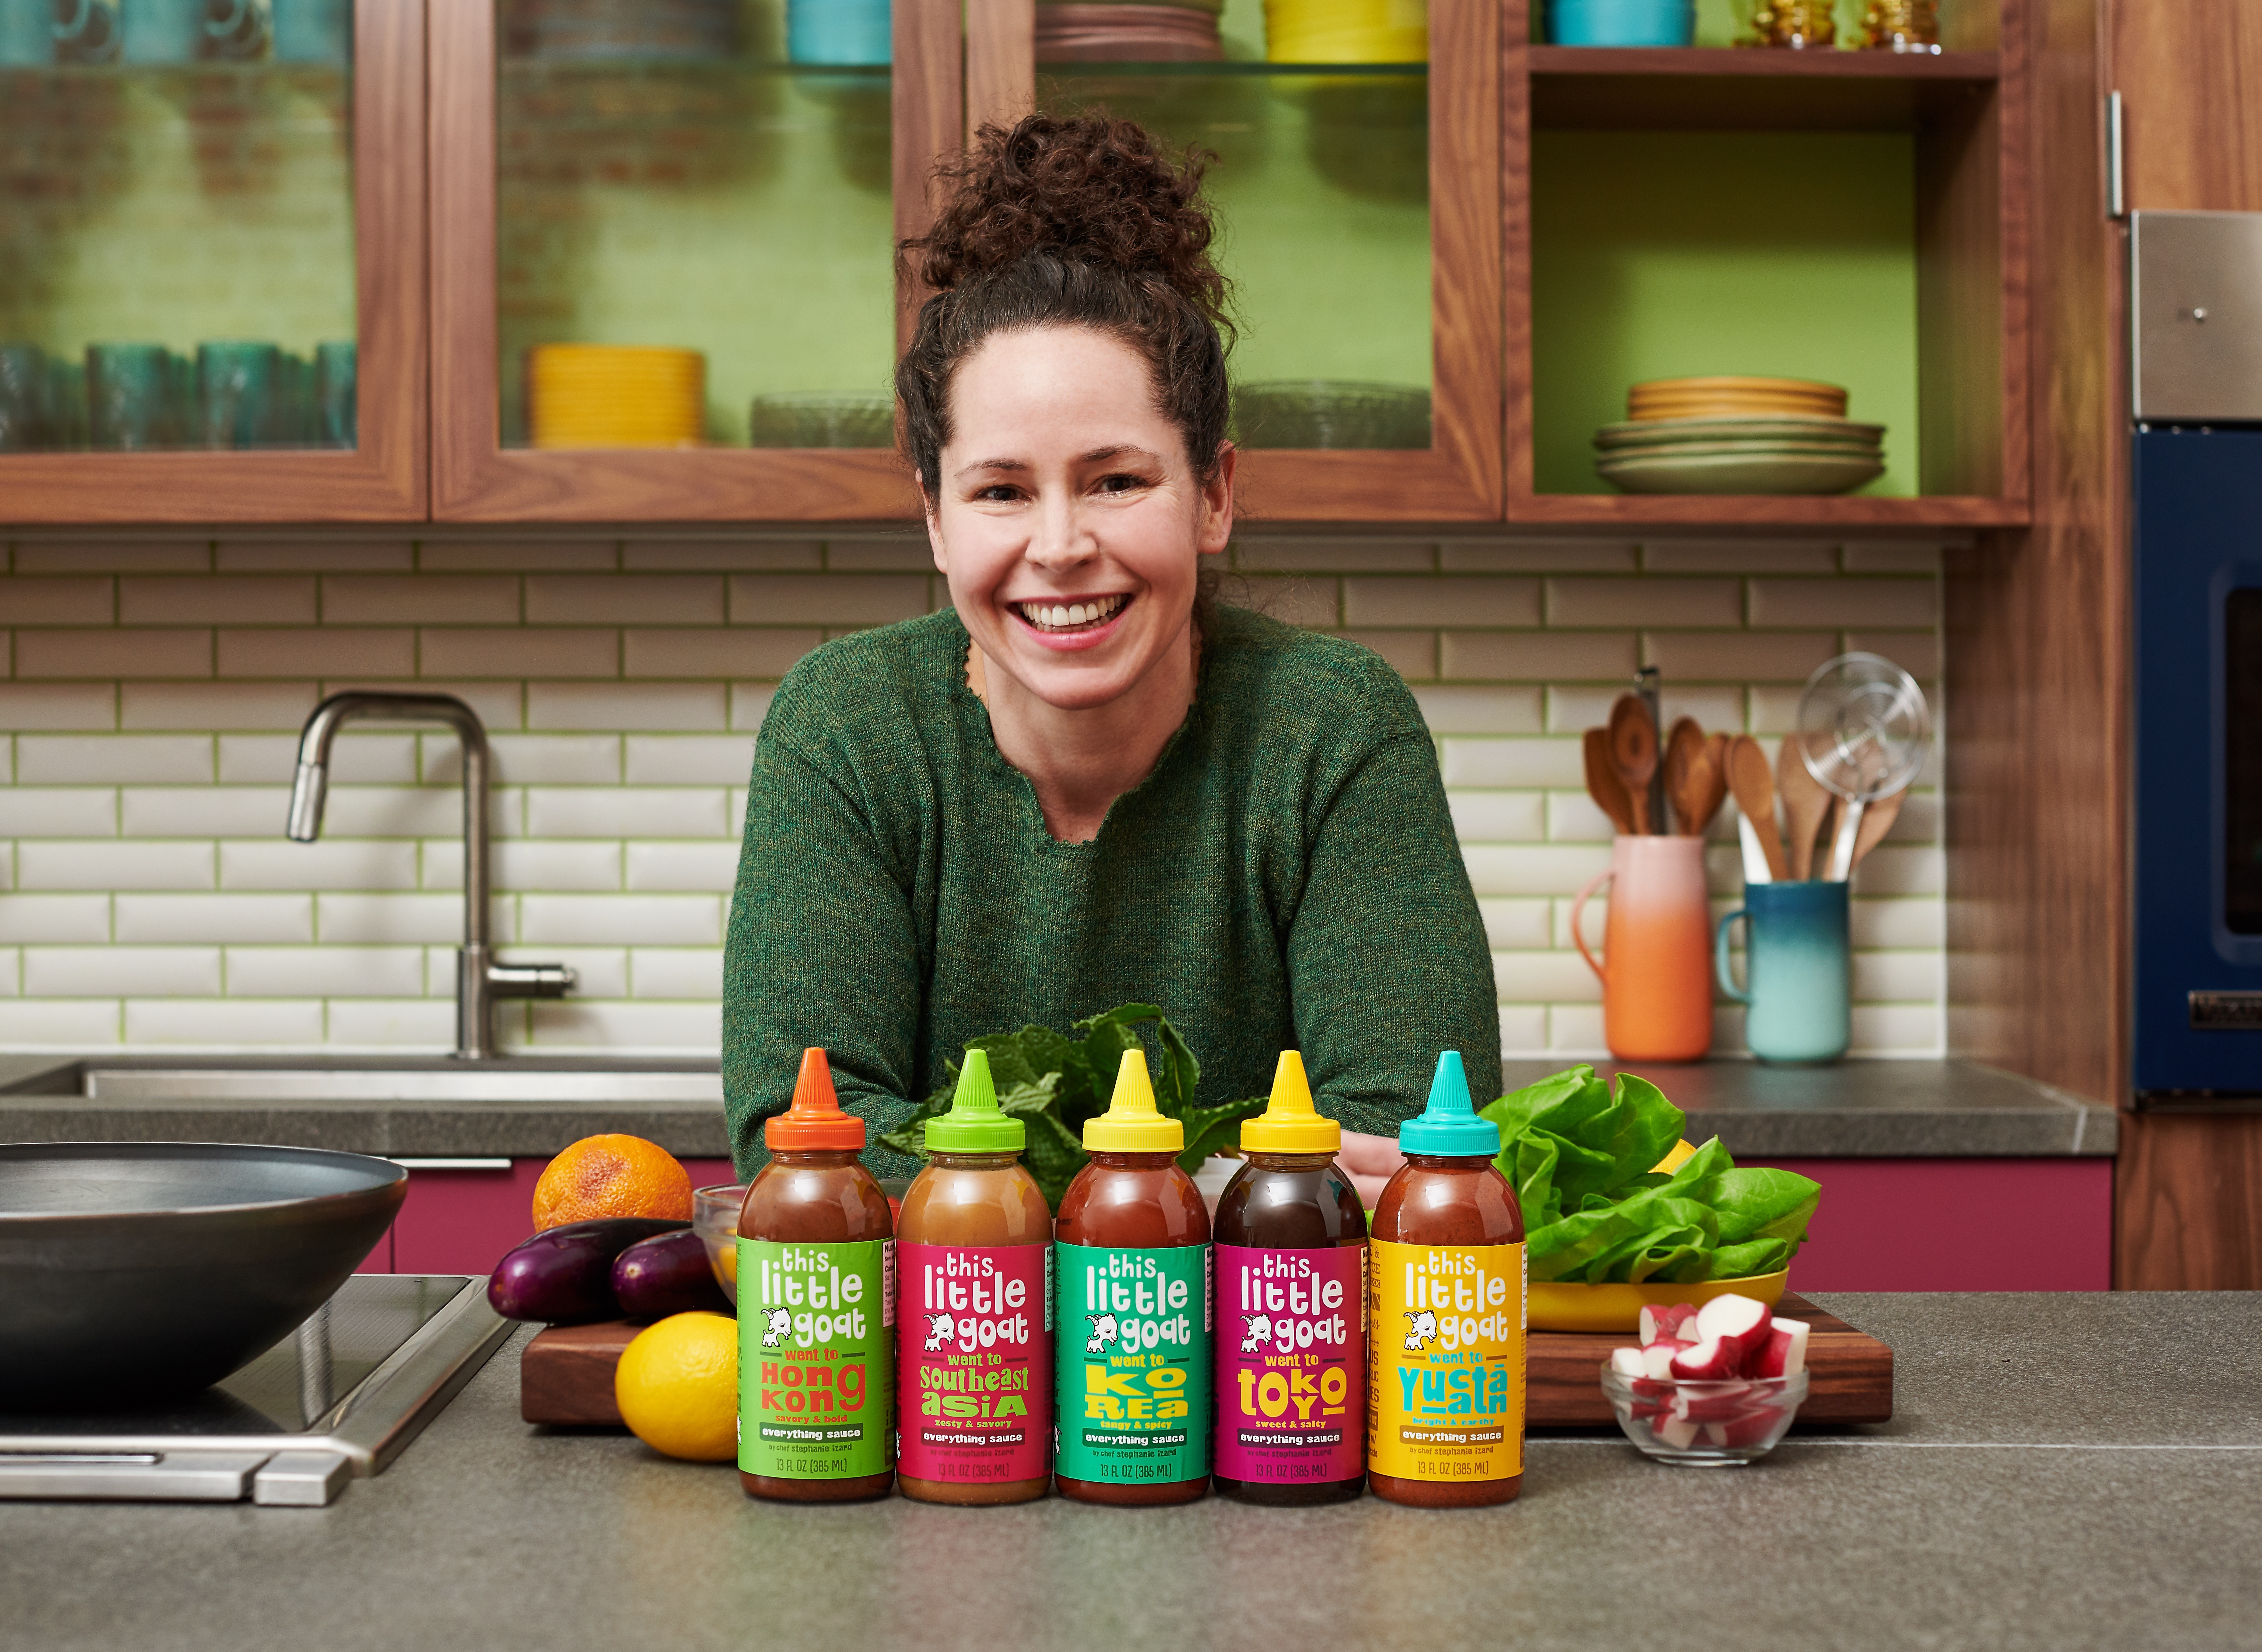 A smiling woman behind a row of bottled sauces